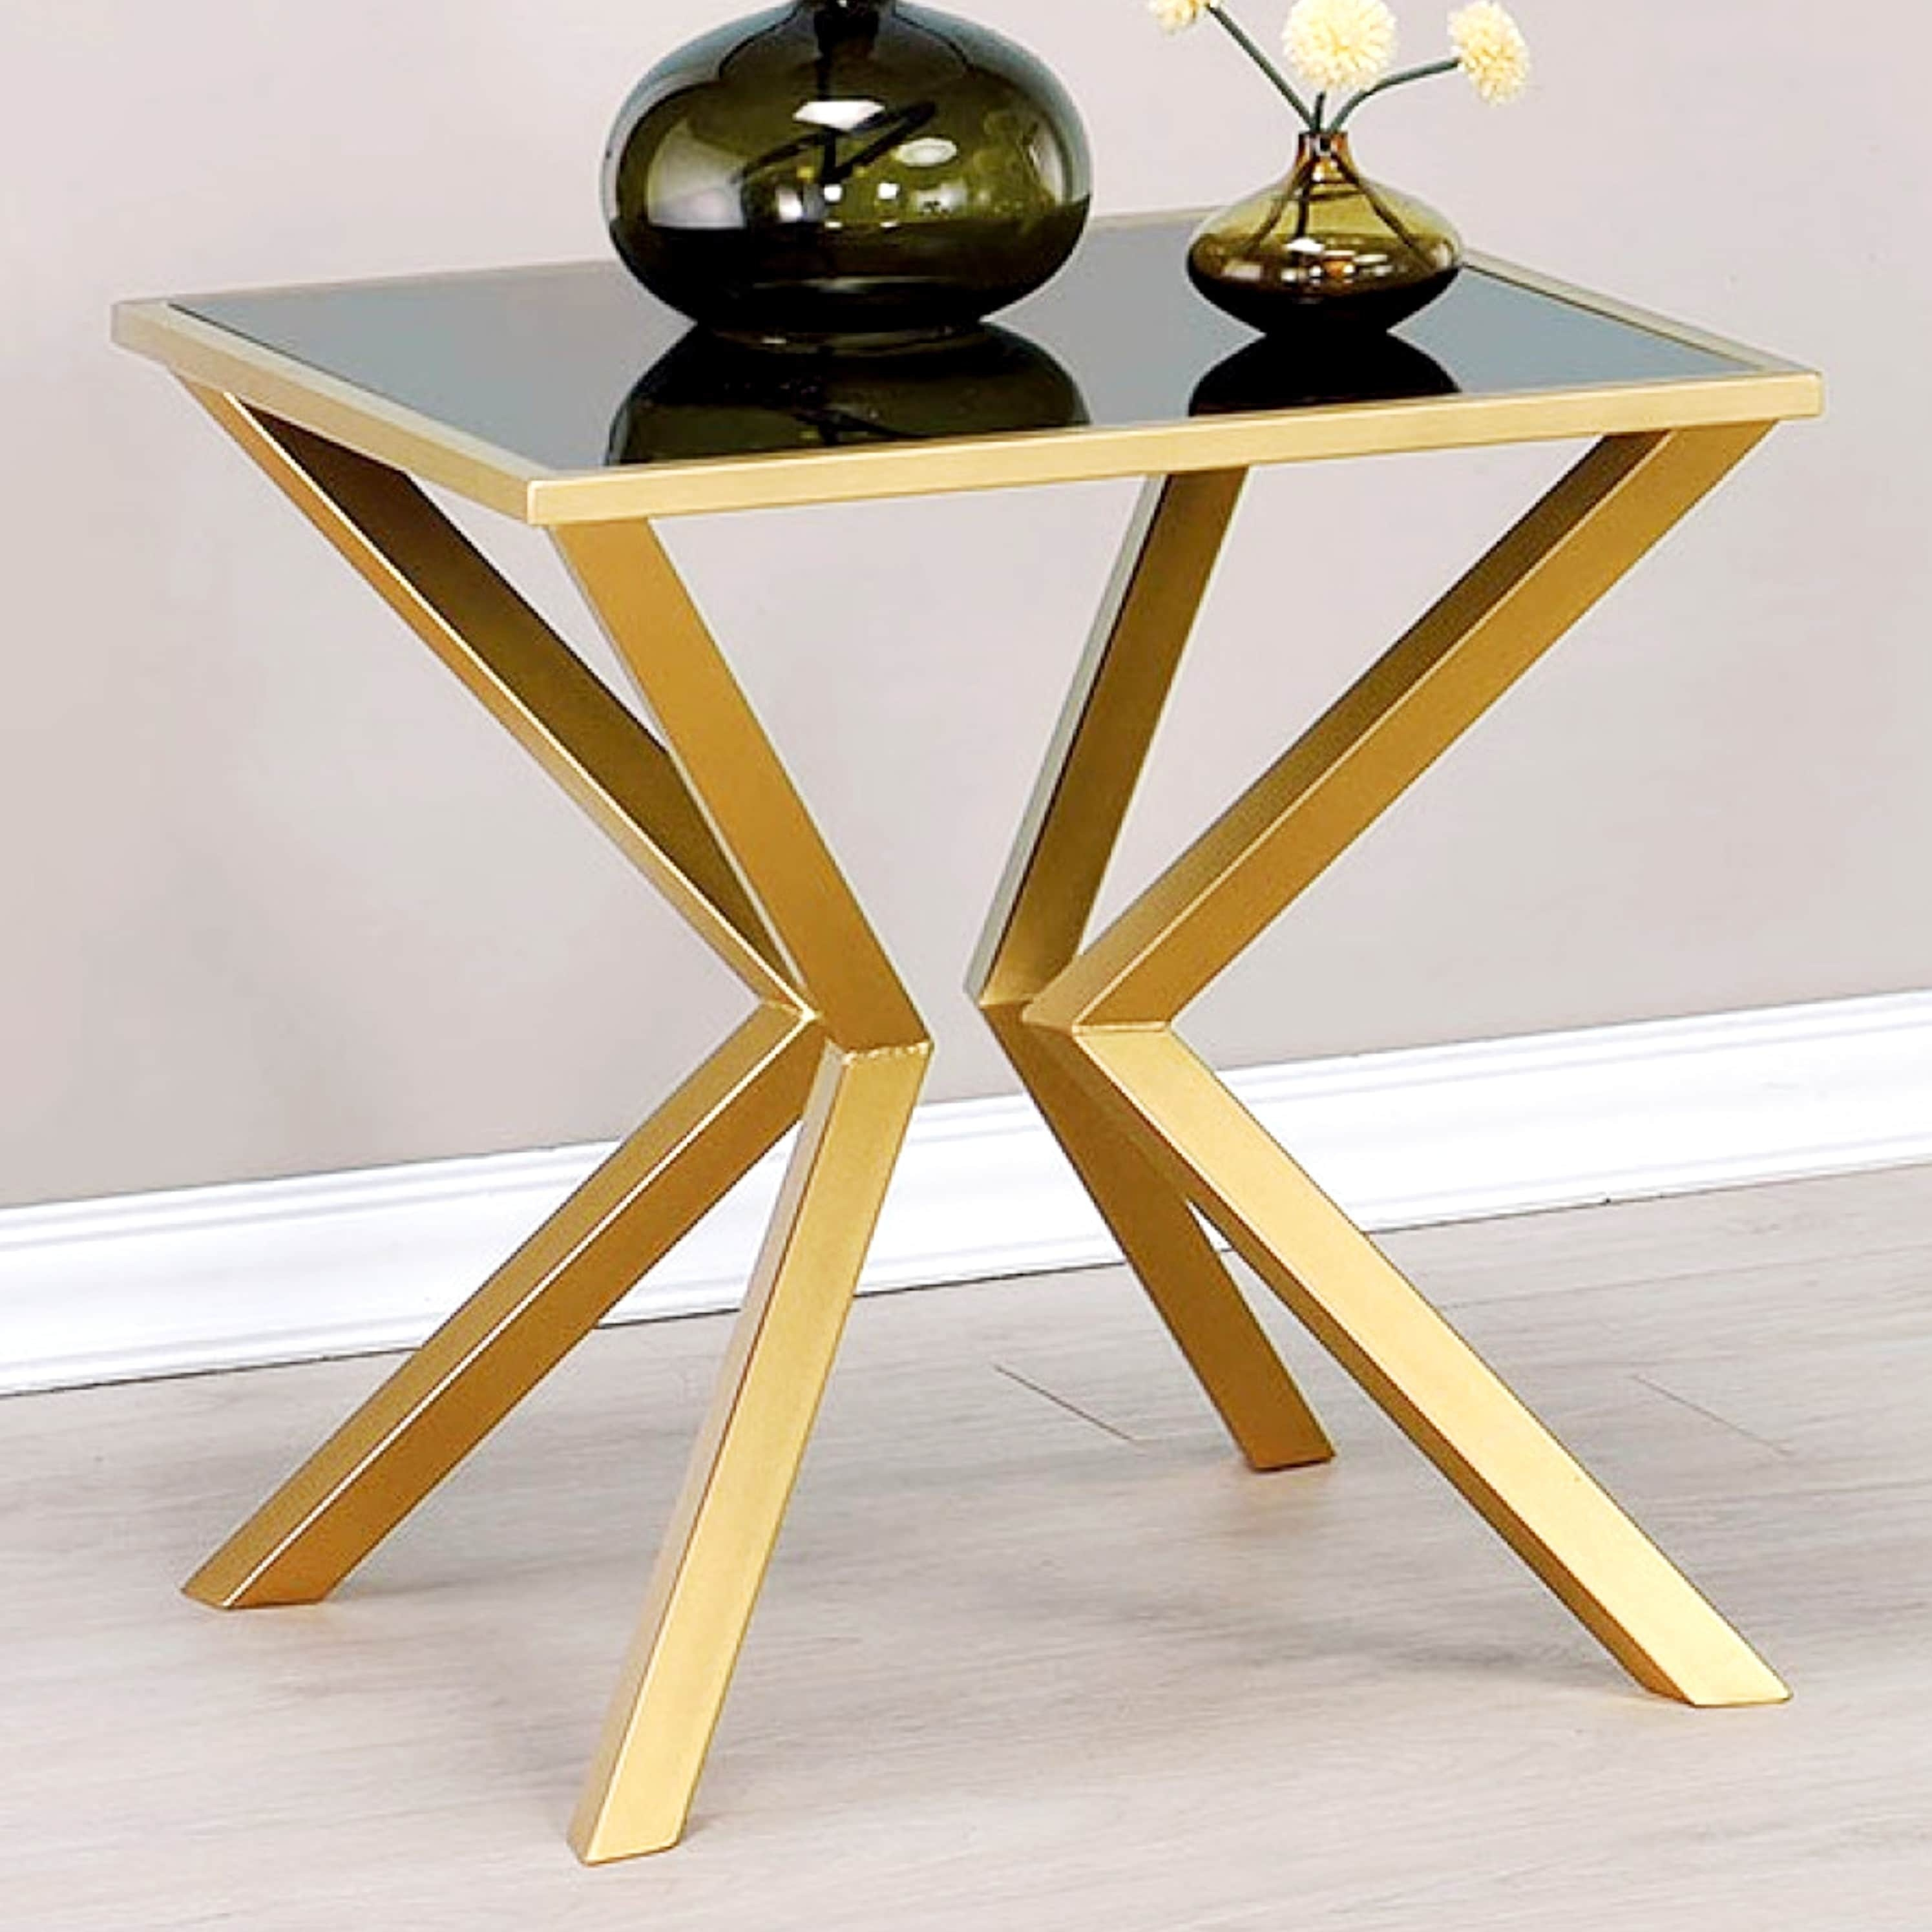 modern aesthetic accent table with black glass top coffee console res product information mid century dining room chairs purple lamp shade occasional lamps pier area rugs metal